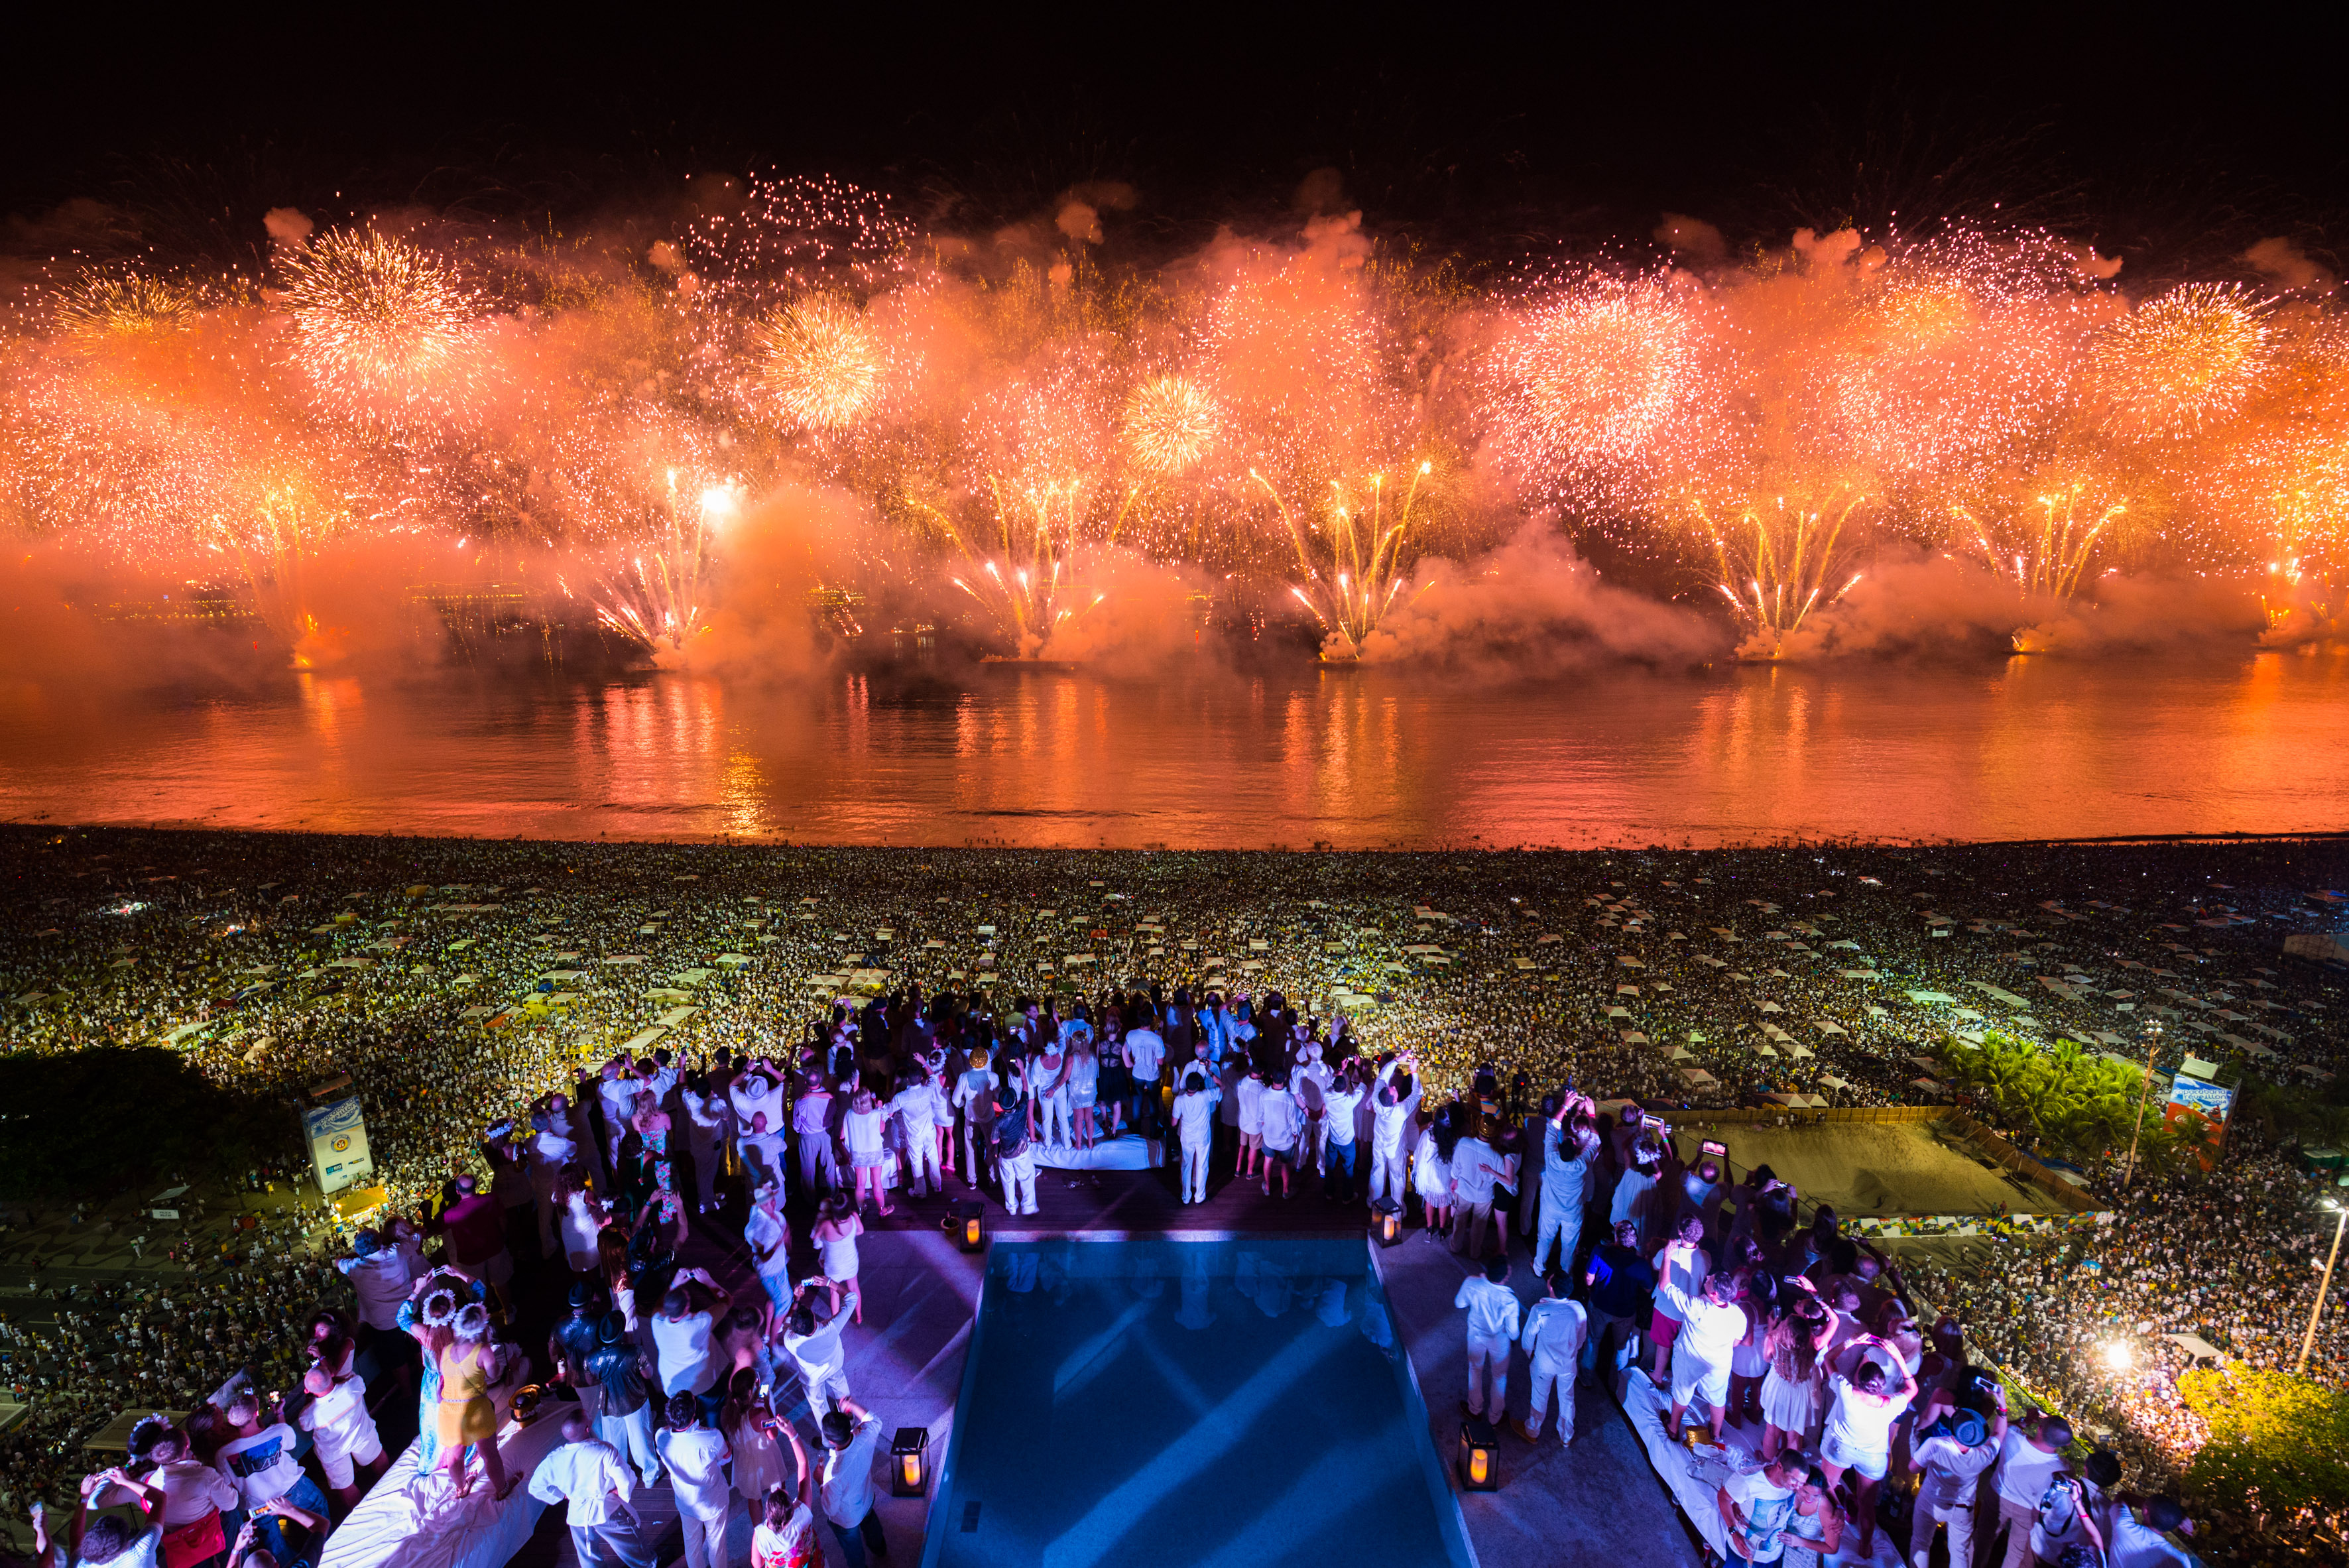 New Year's Eve at Brazil's Copacabana - photo by: PortoBay Events via Flickr